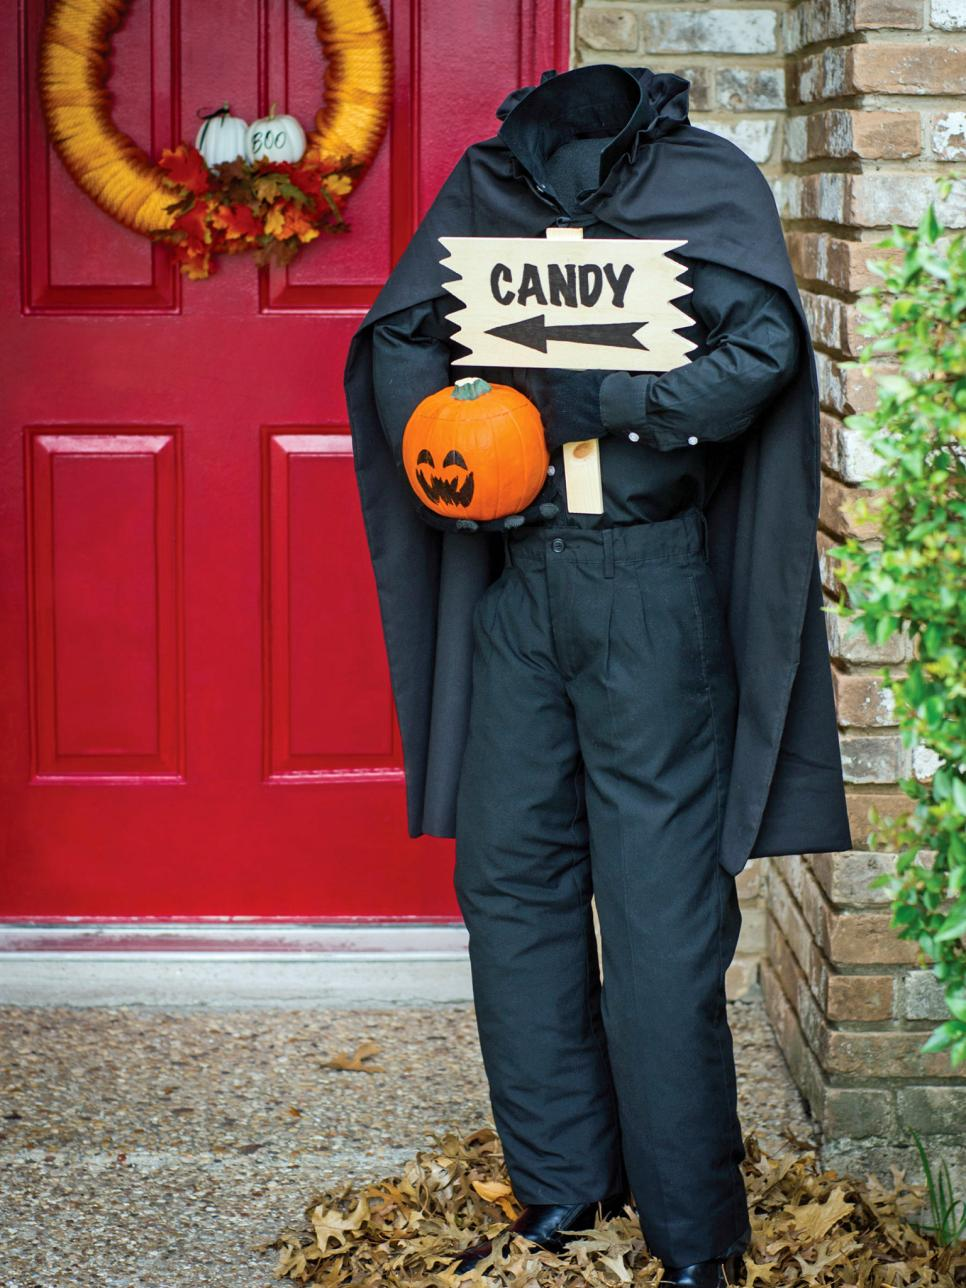 60 diy halloween decorations decorating ideas hgtv - Holloween Decorations